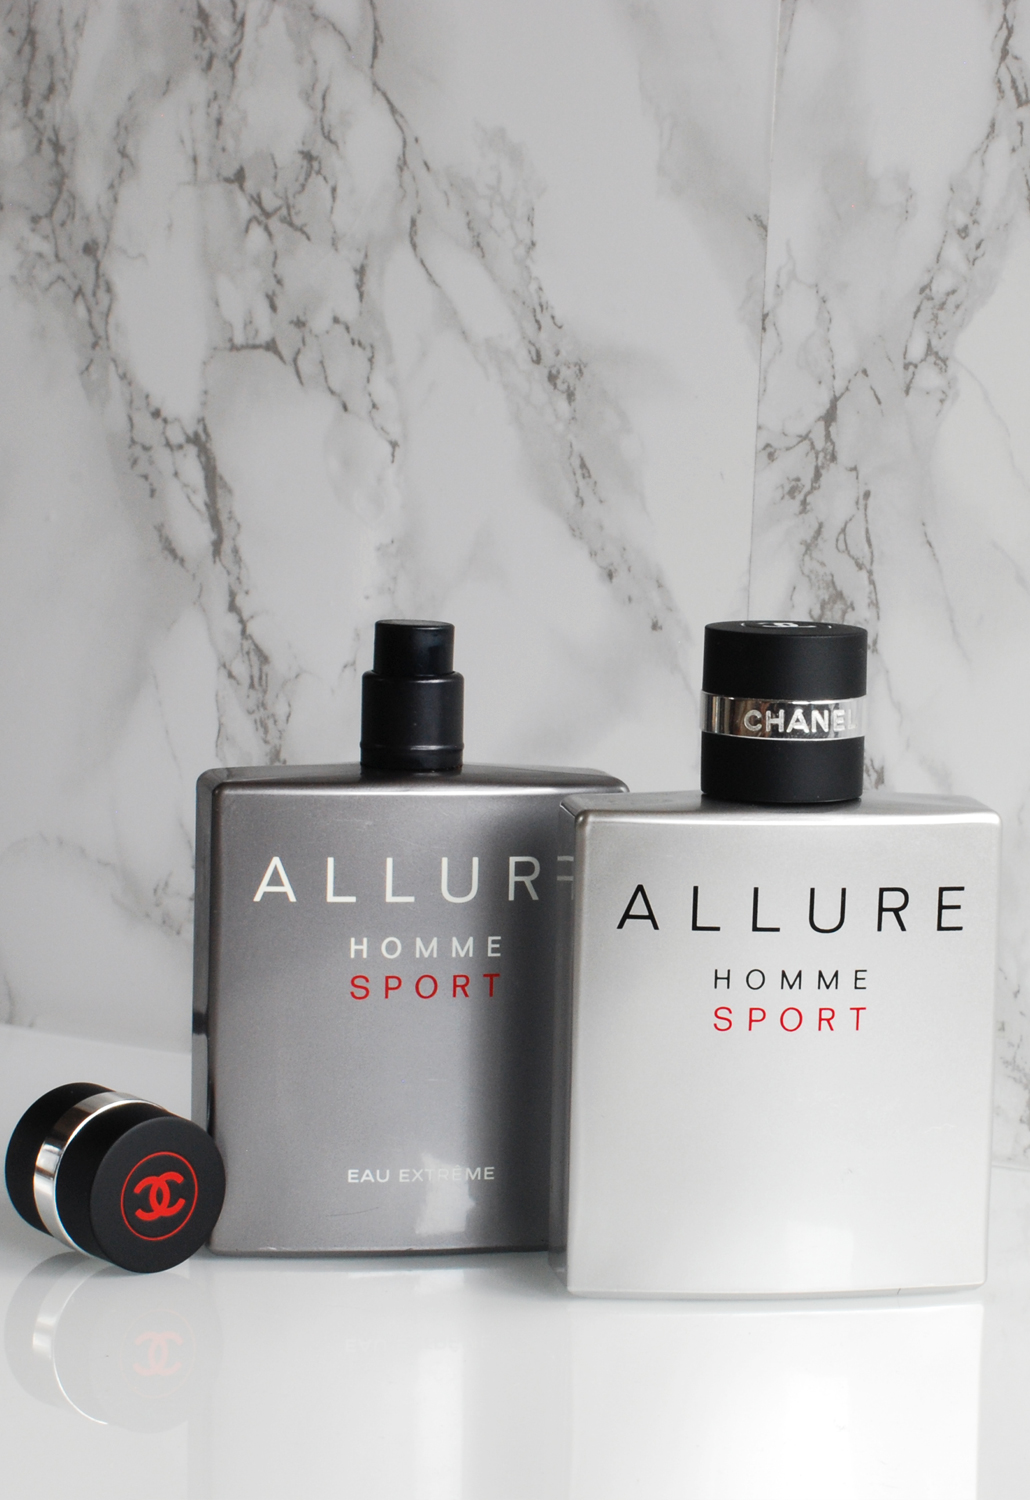 favoriete mannen parfums Chanel allure